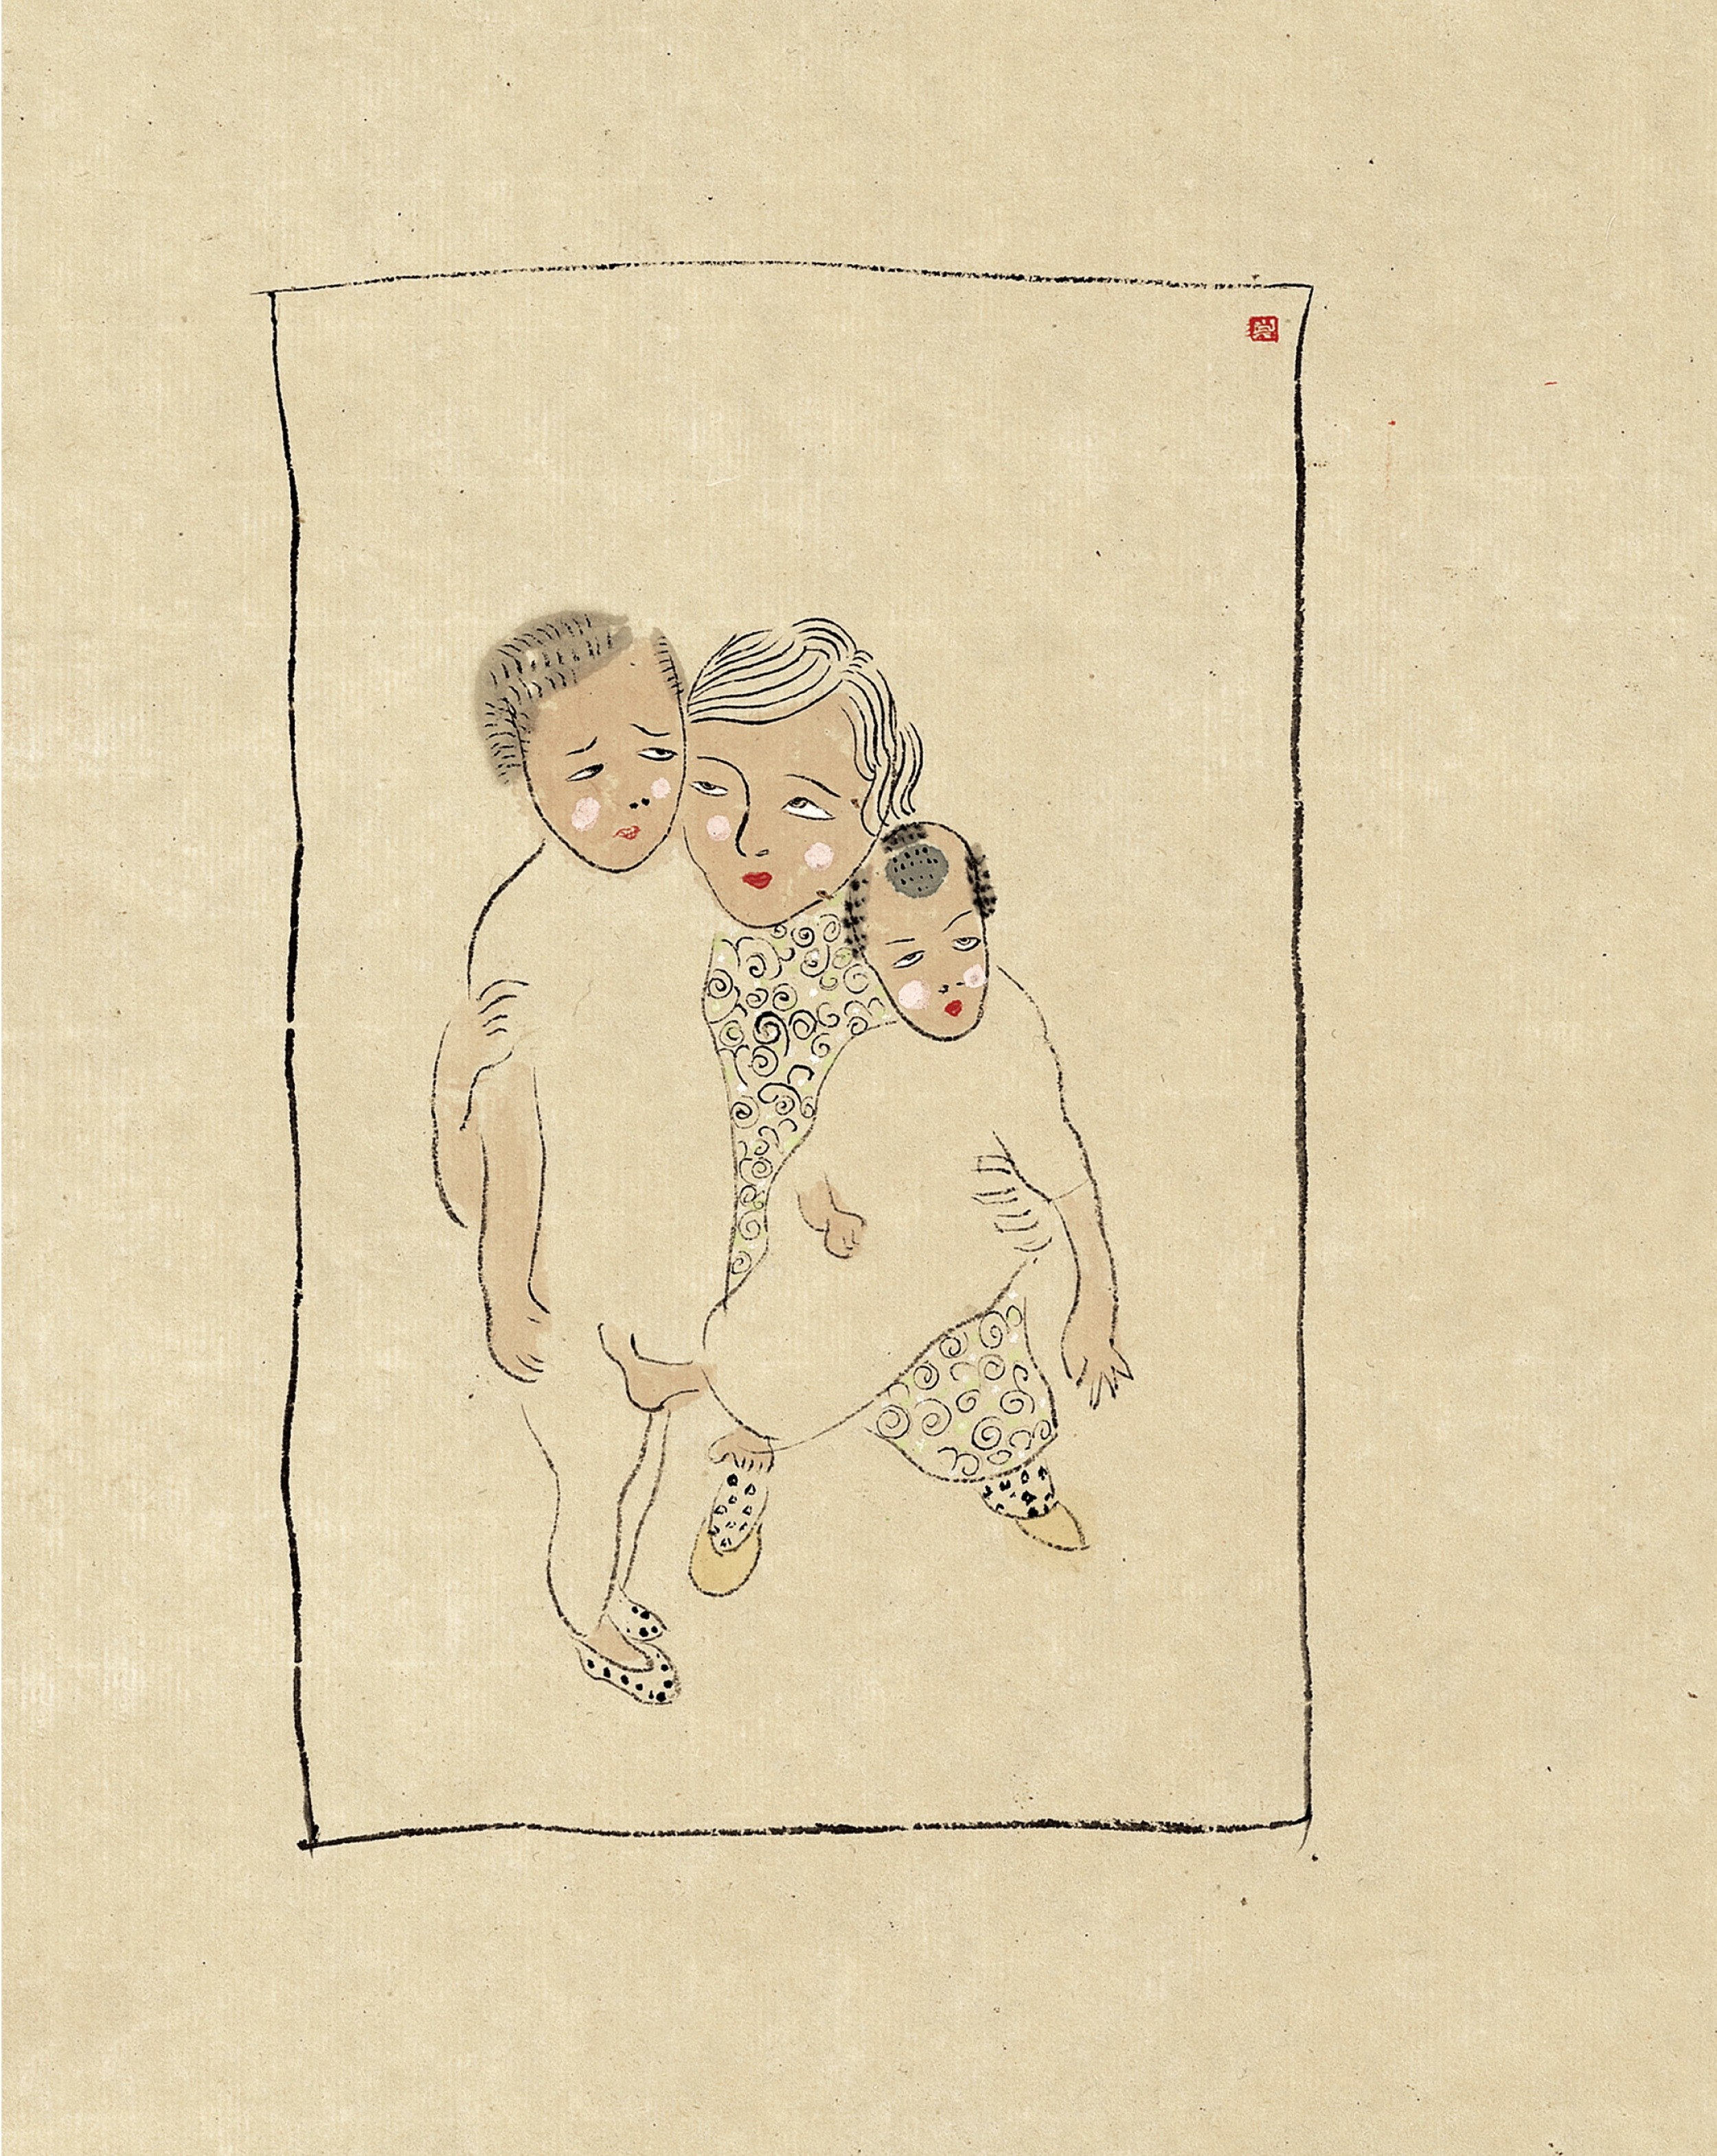 Wang Mengsha 王濛莎, Flowing Time 新似水年华系列, 2008, Chinese ink and color on paper 纸本水墨设色, 48 x 77 cm